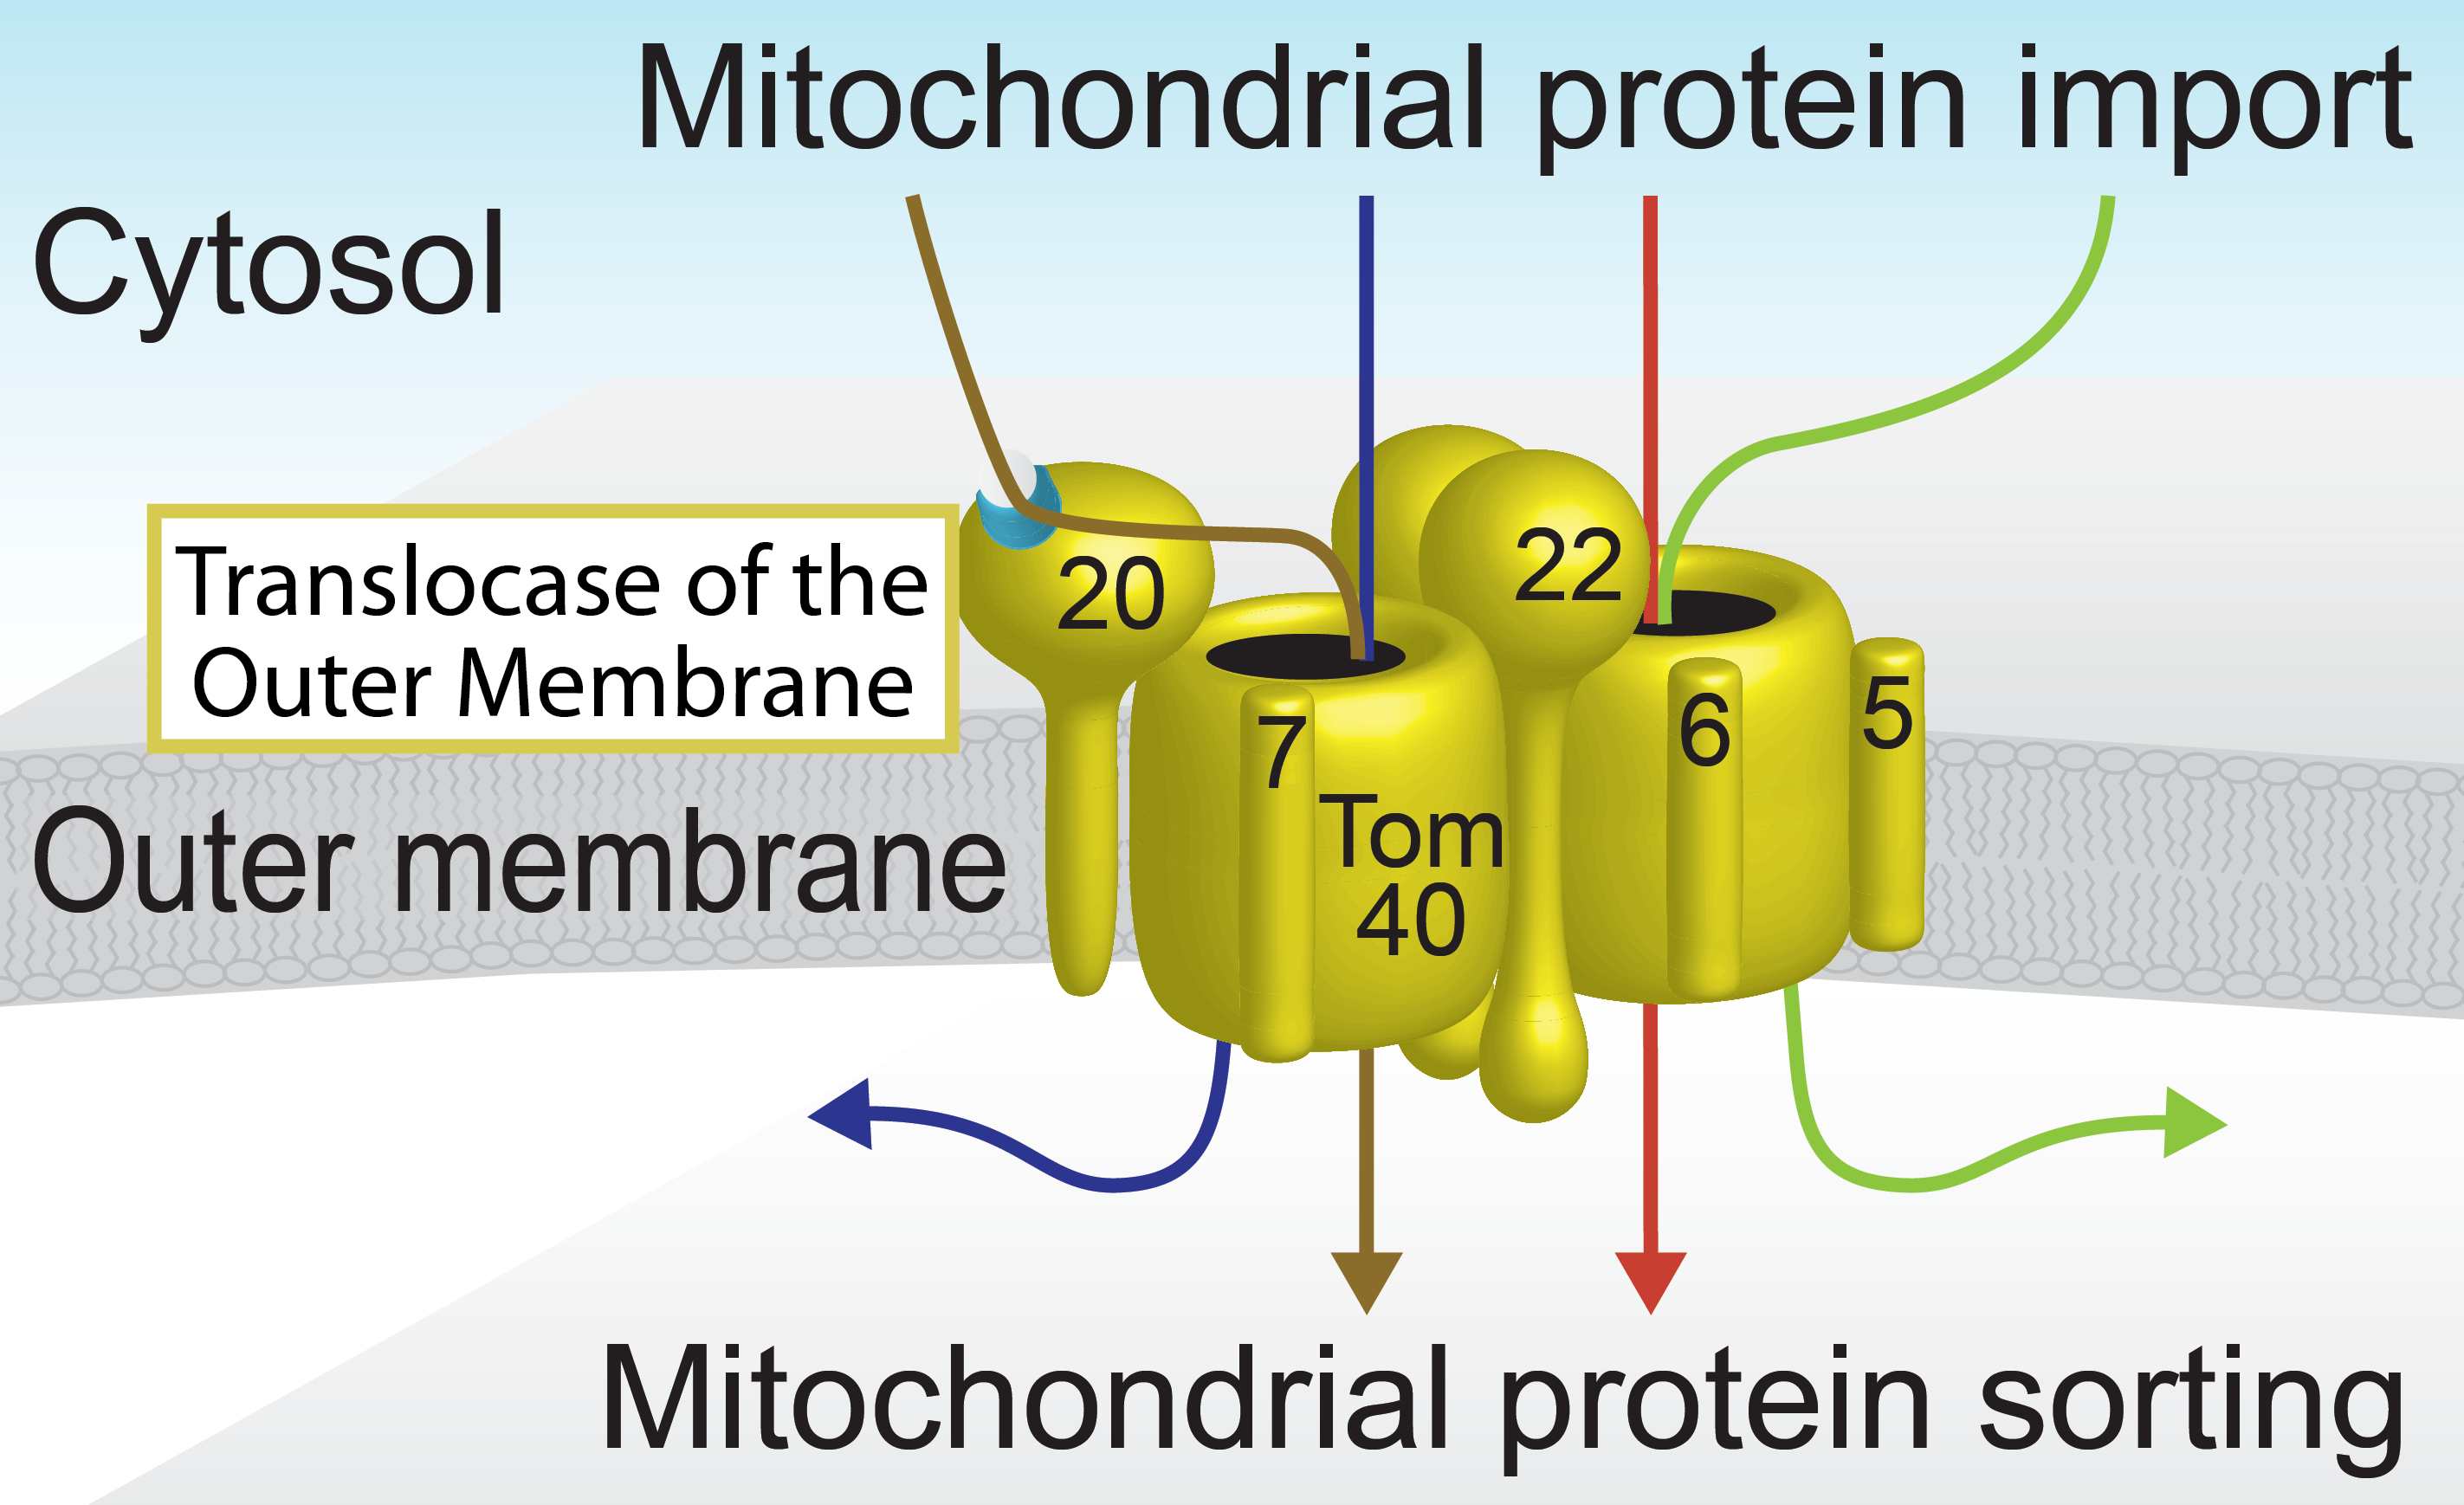 TOM, the entry gate of mitochondria